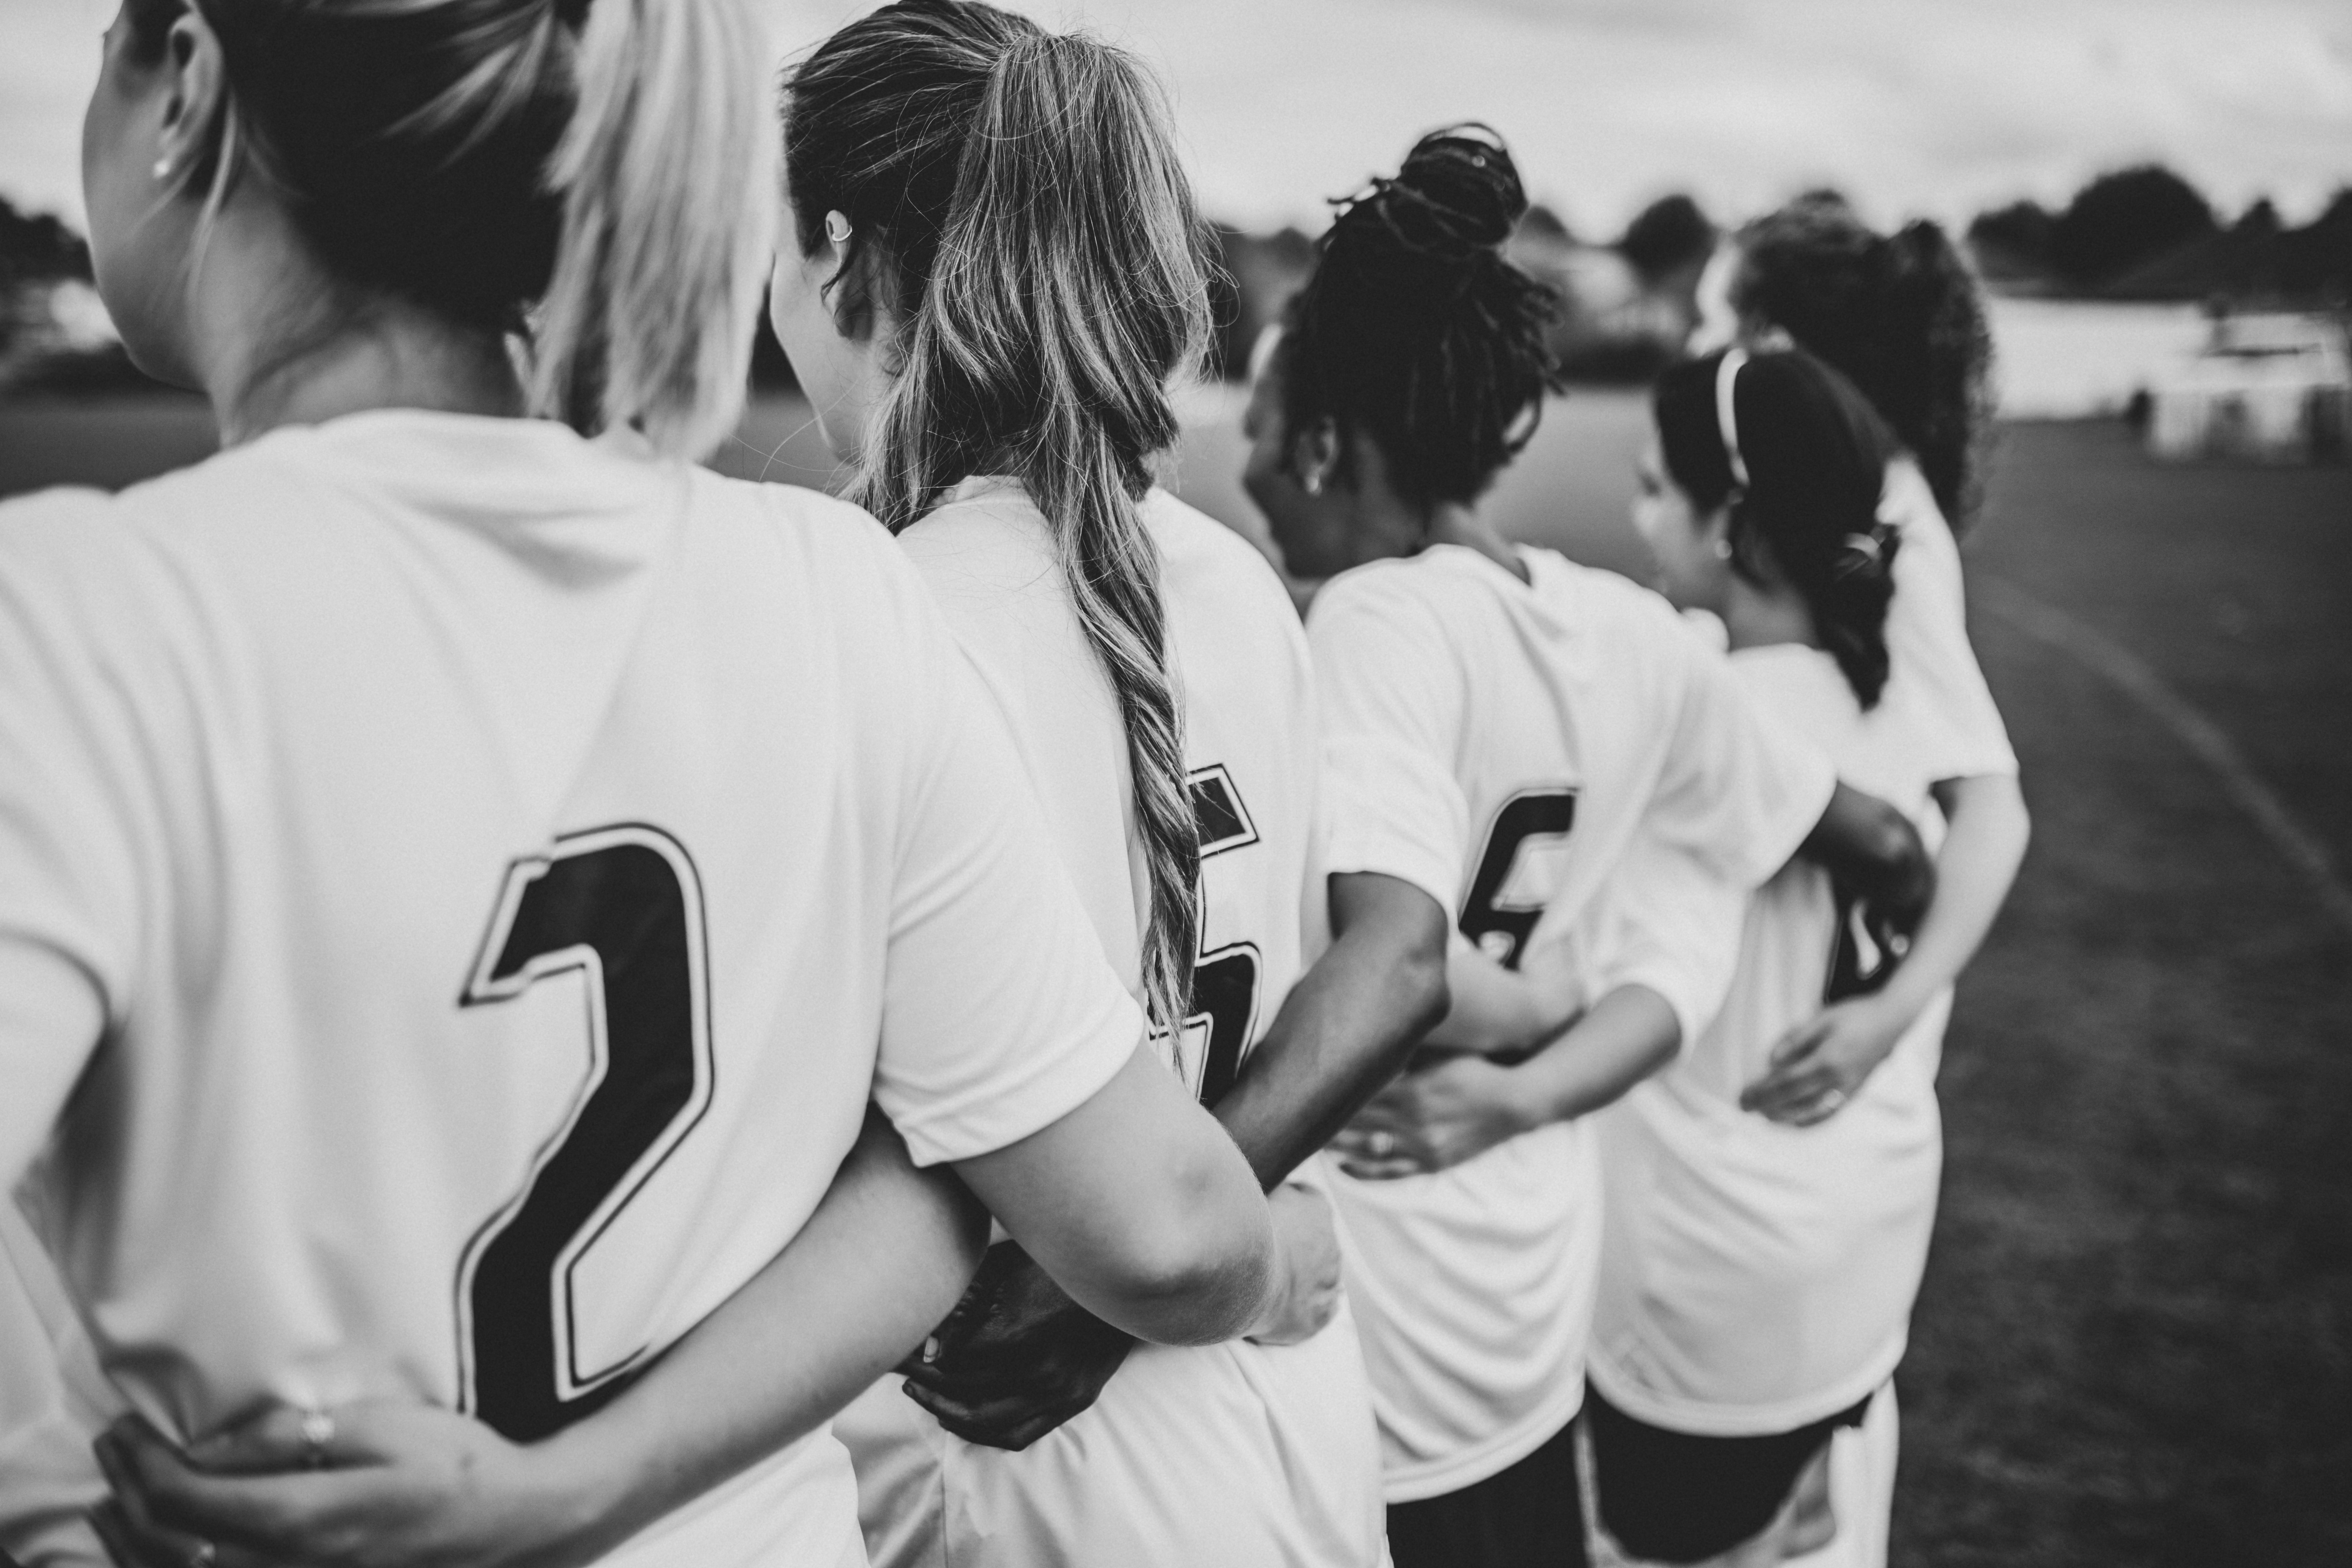 Arizona State Soccer Association - providing opportunities for all adults, regardless of gender, age, race, nationality, or religion, to play soccer across Arizona